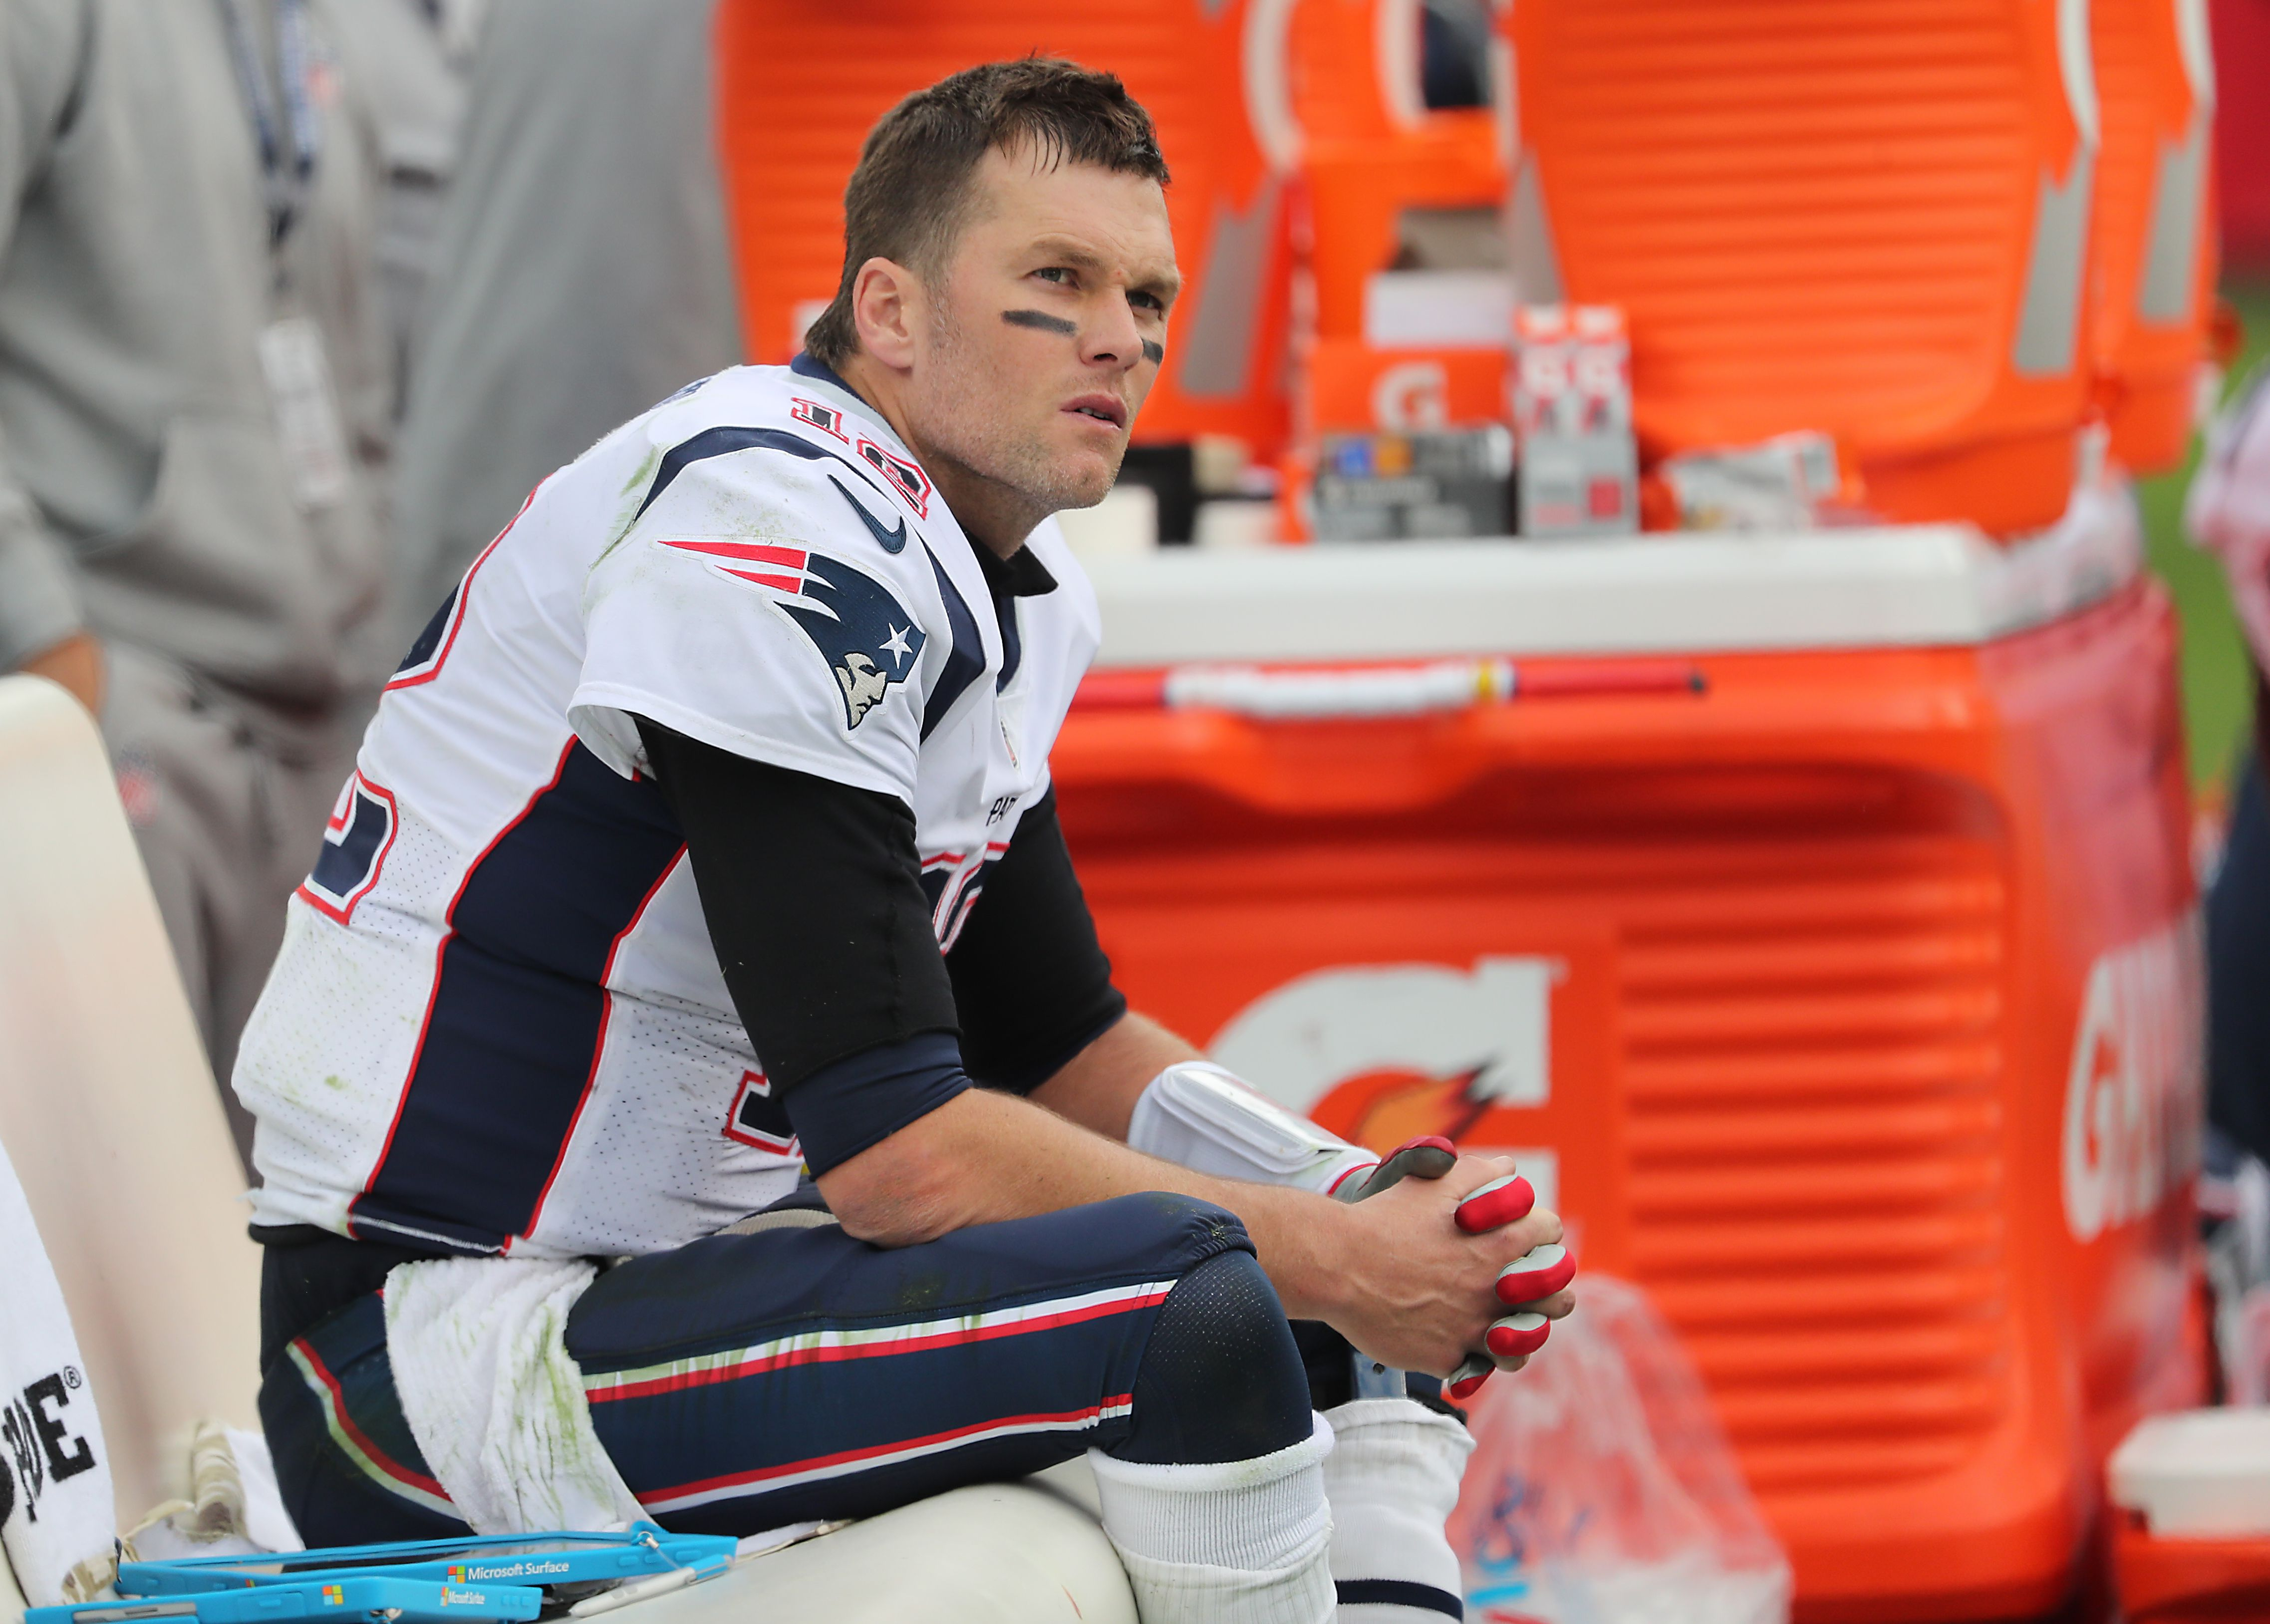 Could Tom Brady finally be showing signs of his age? - The Boston Globe